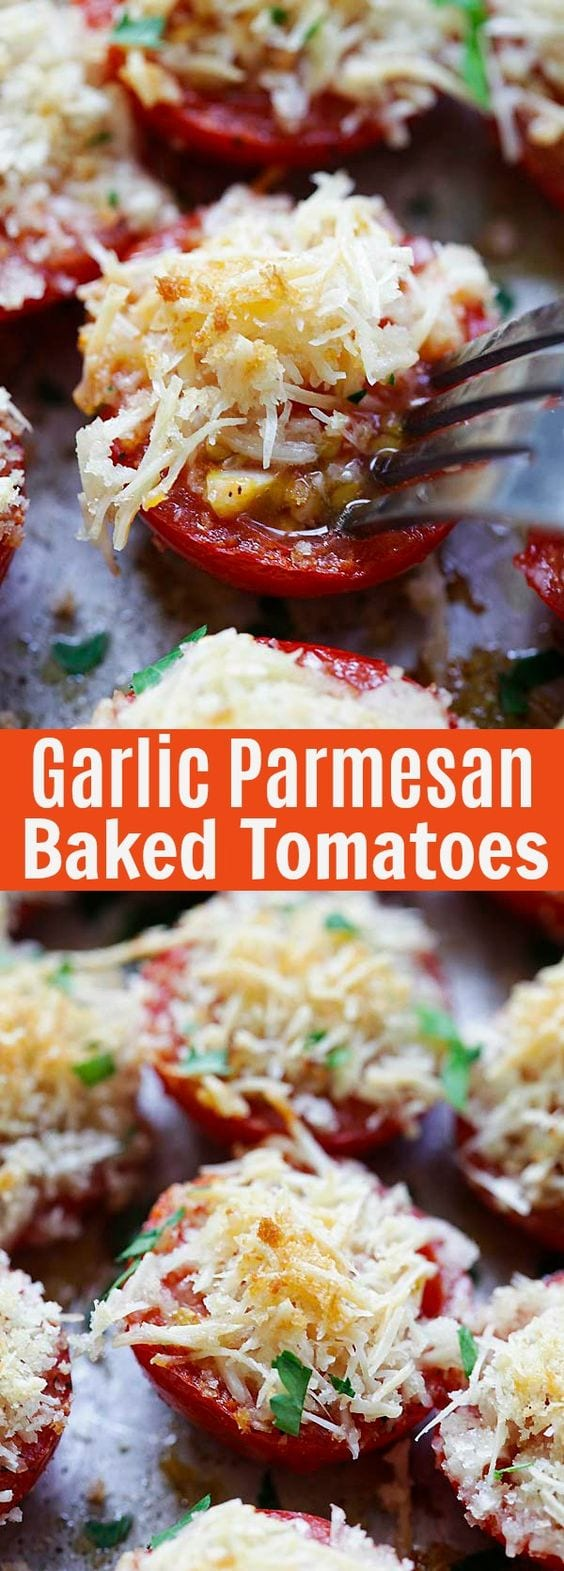 Garlic Parmesan Roasted Tomatoes are so juicy, plump and delicious. The panko breadcrumbs make them so crunchy!